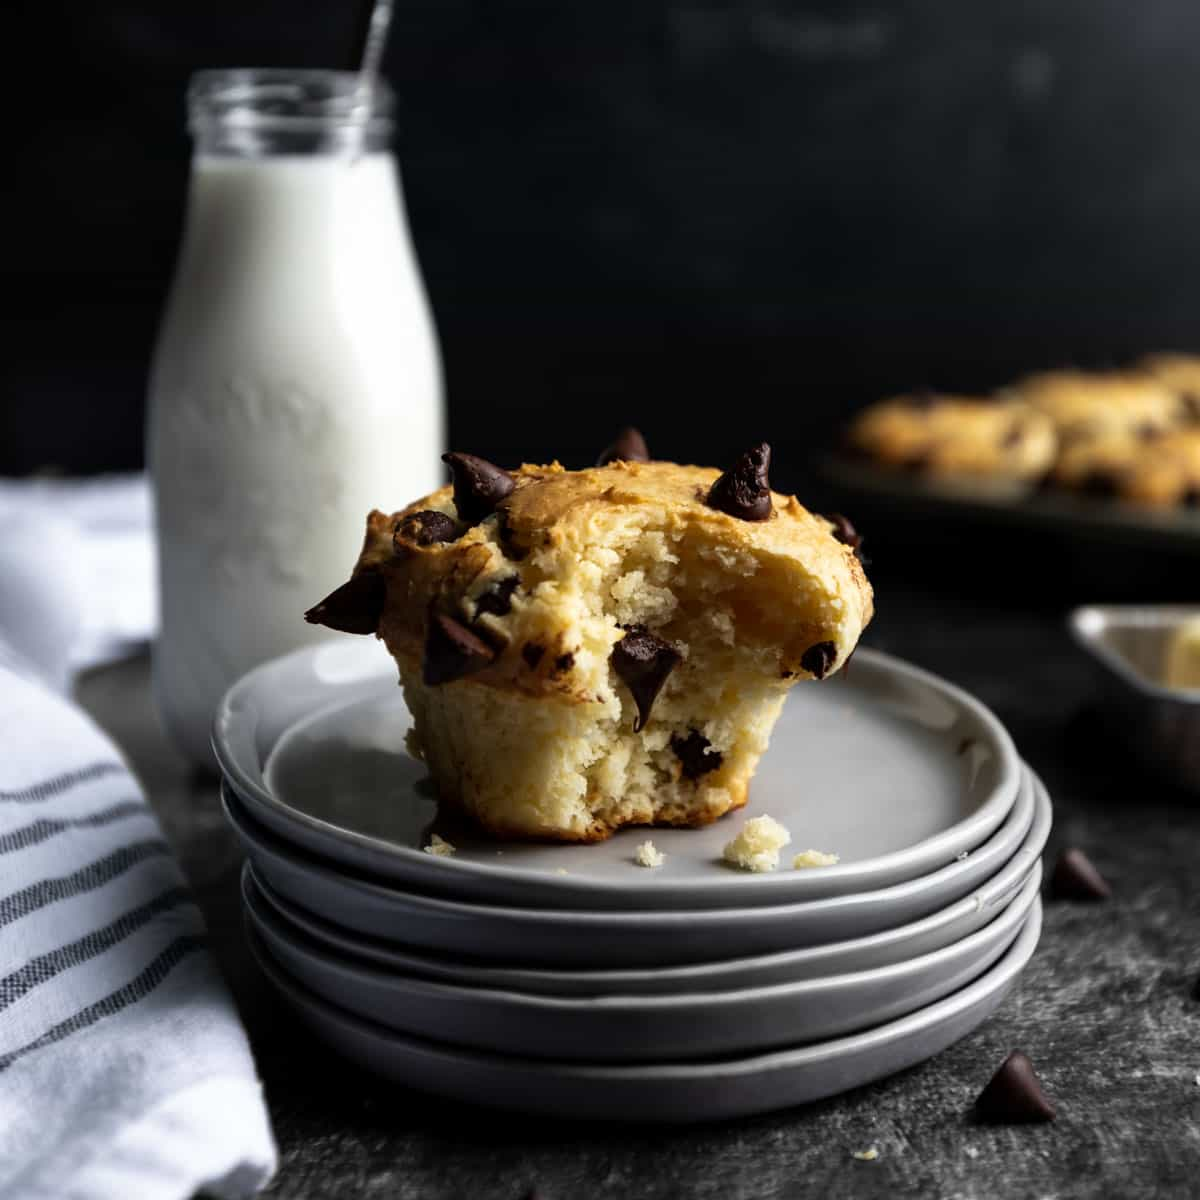 A chocolate chip muffin on a stack of plates, next to a jar of milk.